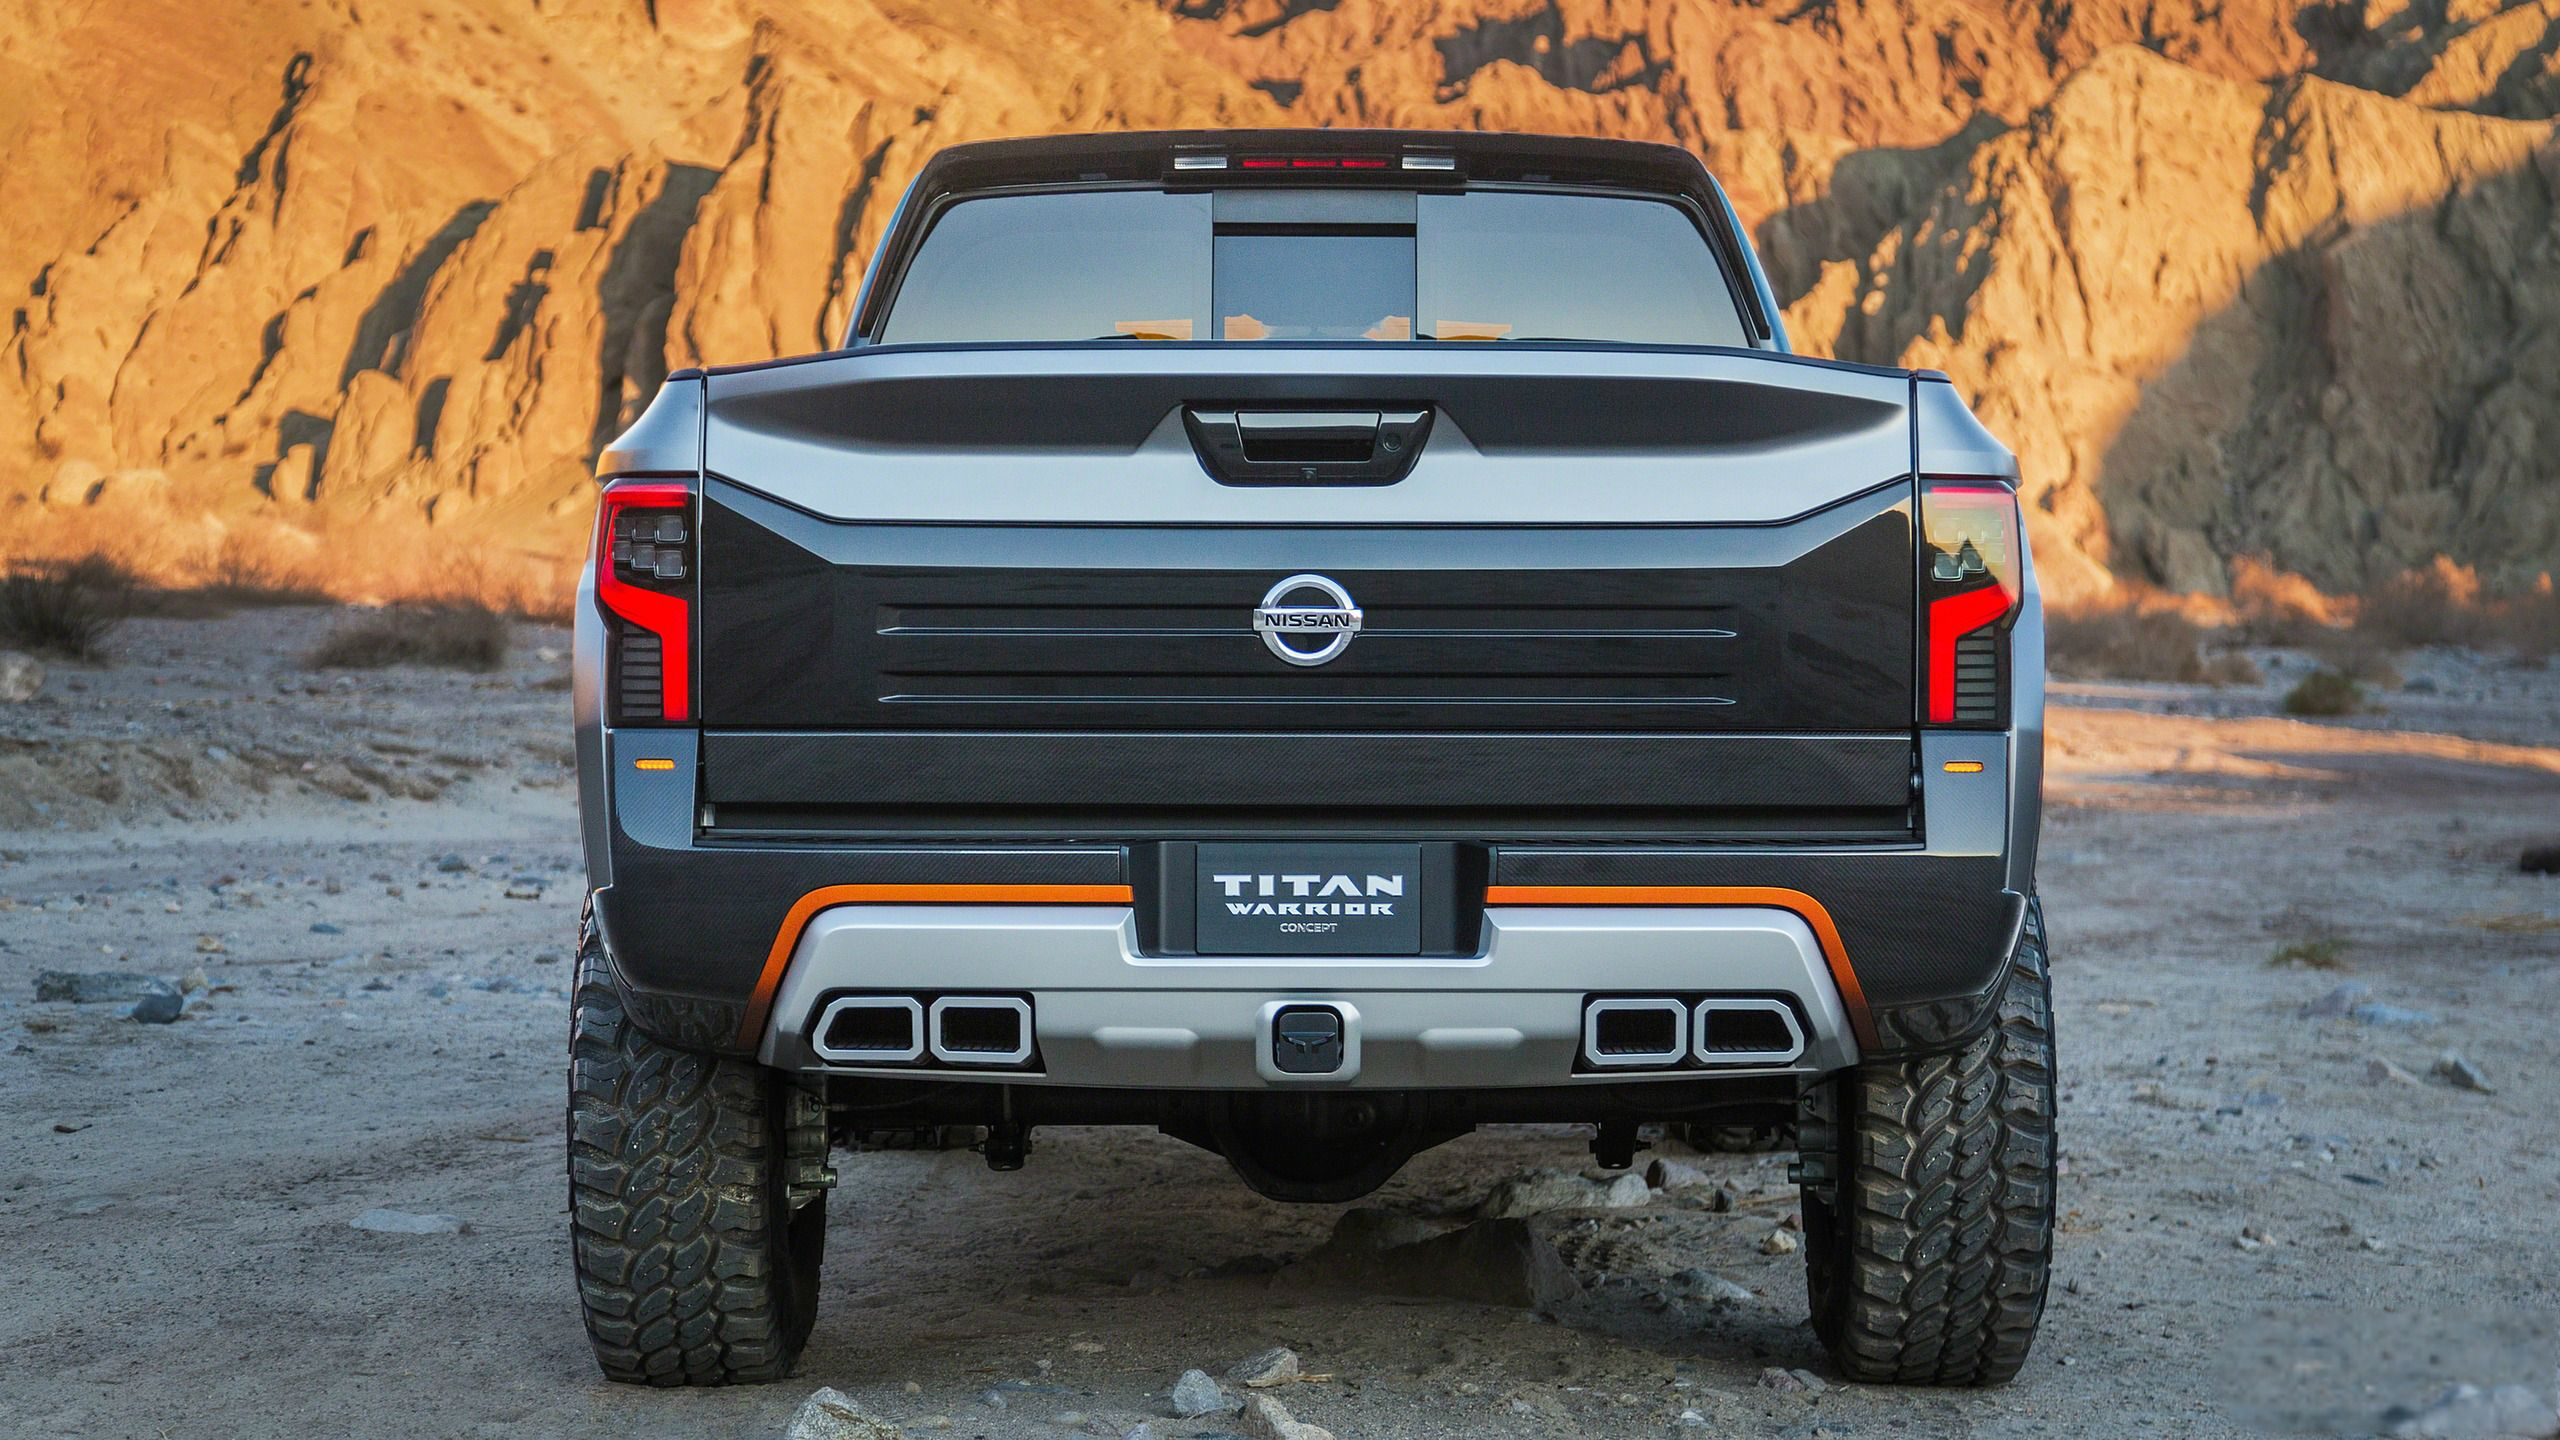 Like Combining Ufc And Filing Tax Returns Nissan S An Warrior Concept Combines Desert Racing Daily Driving